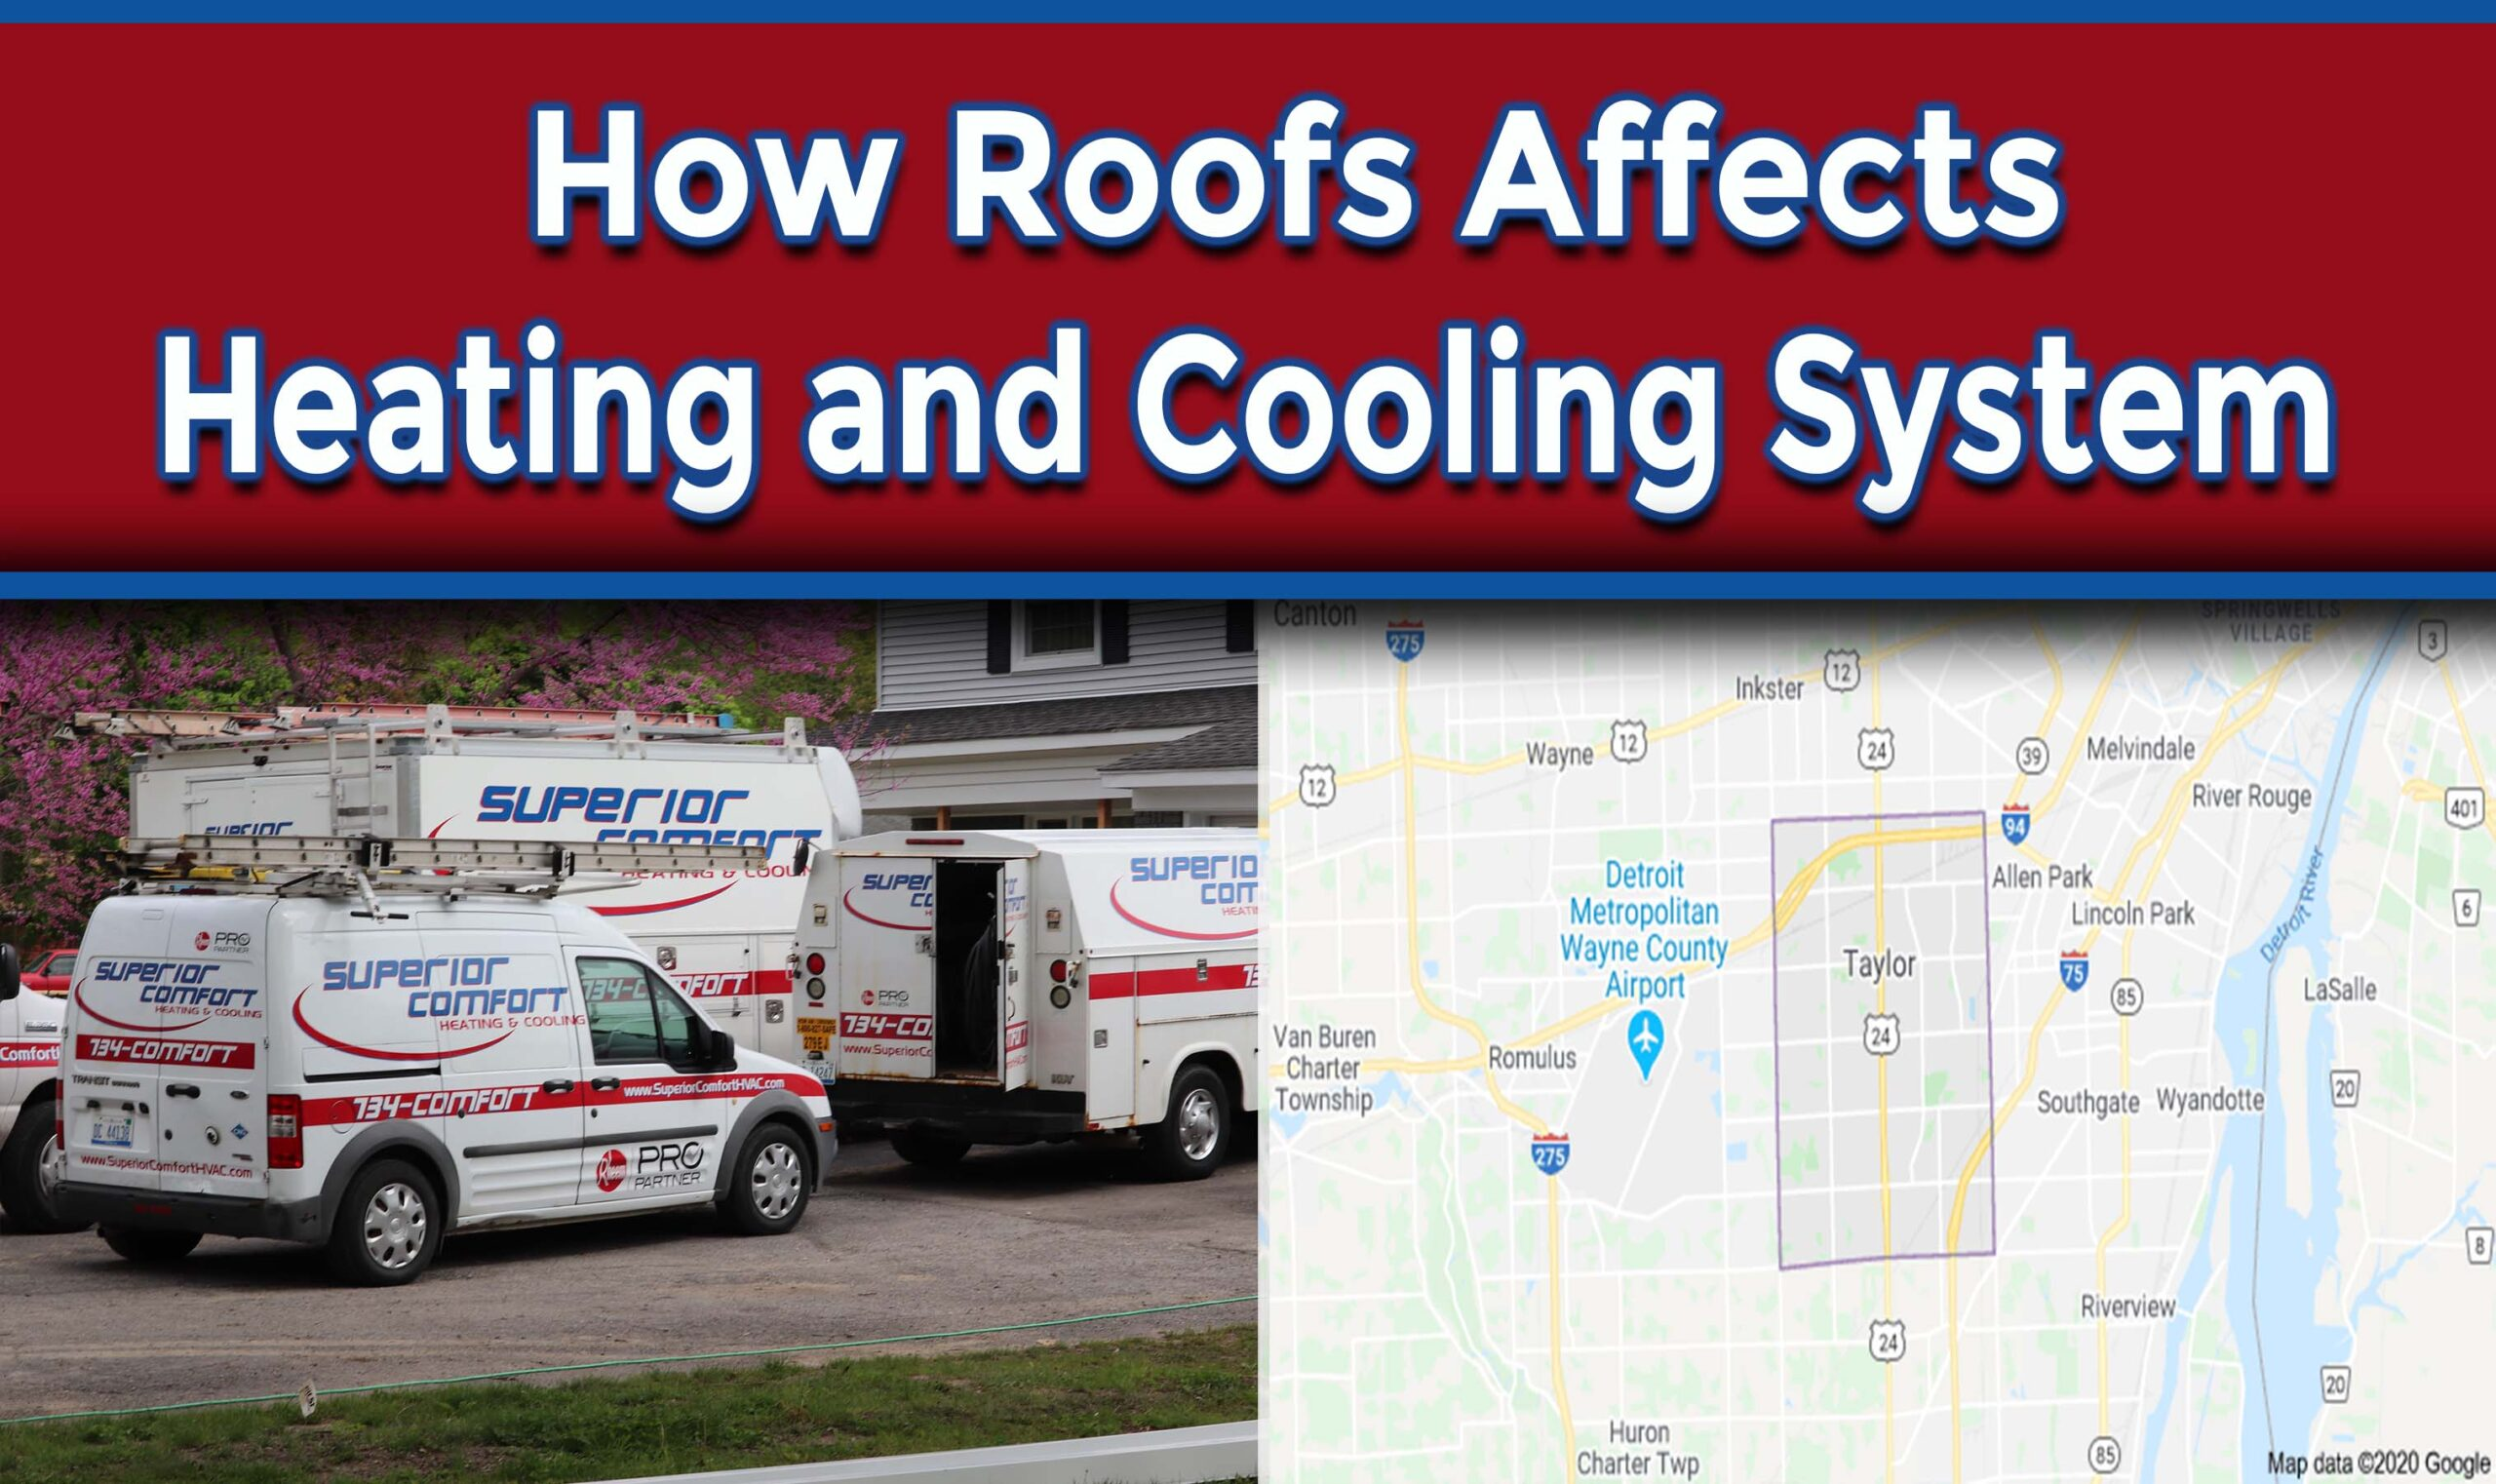 How Roofs Affects Heating and Cooling System